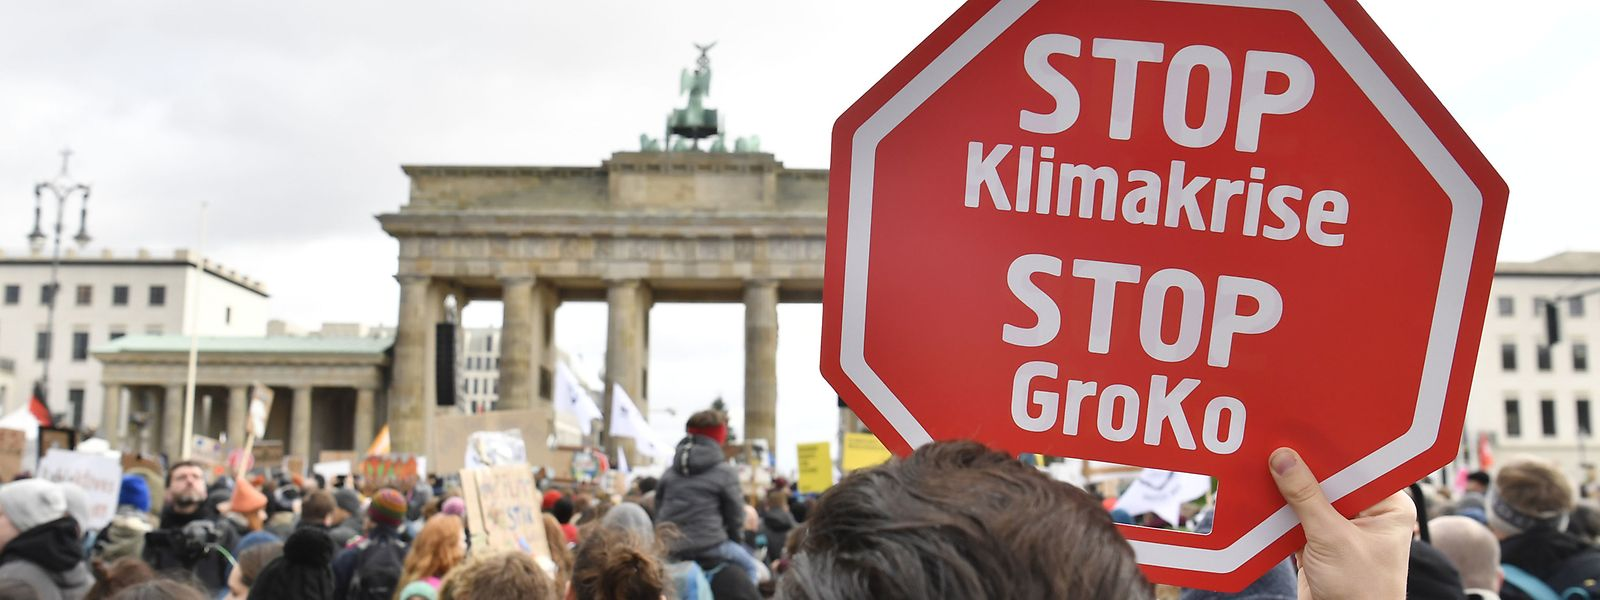 Klimaschutz-Proteste am Brandenburger Tor in Berlin.